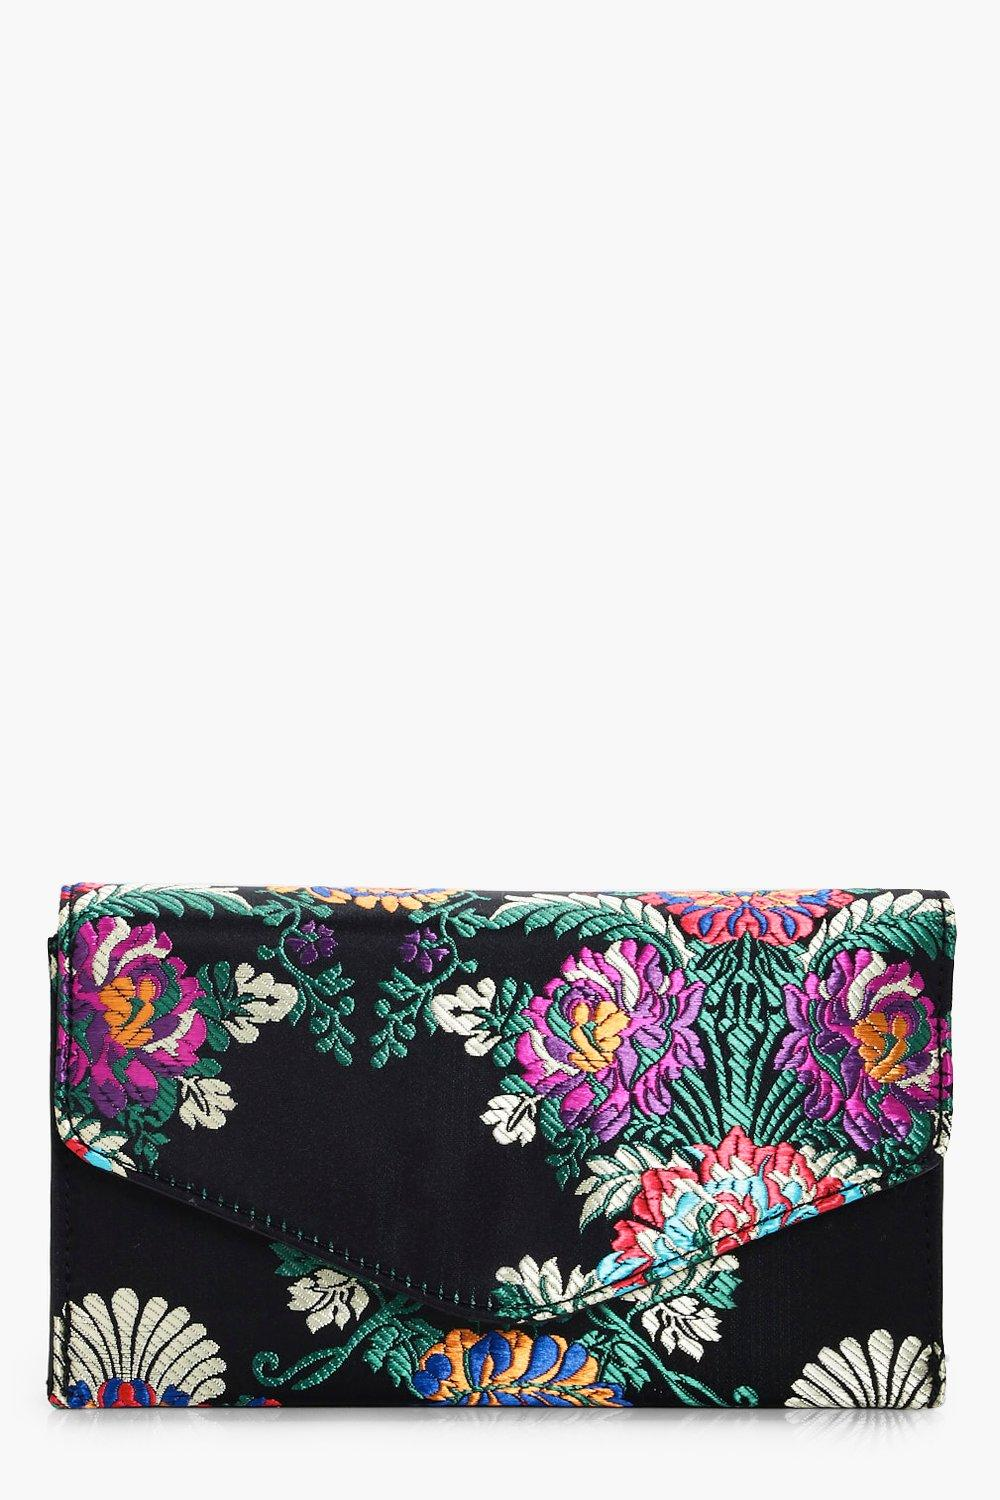 Oriental Embroidery Clutch - black - Ellie Orienta